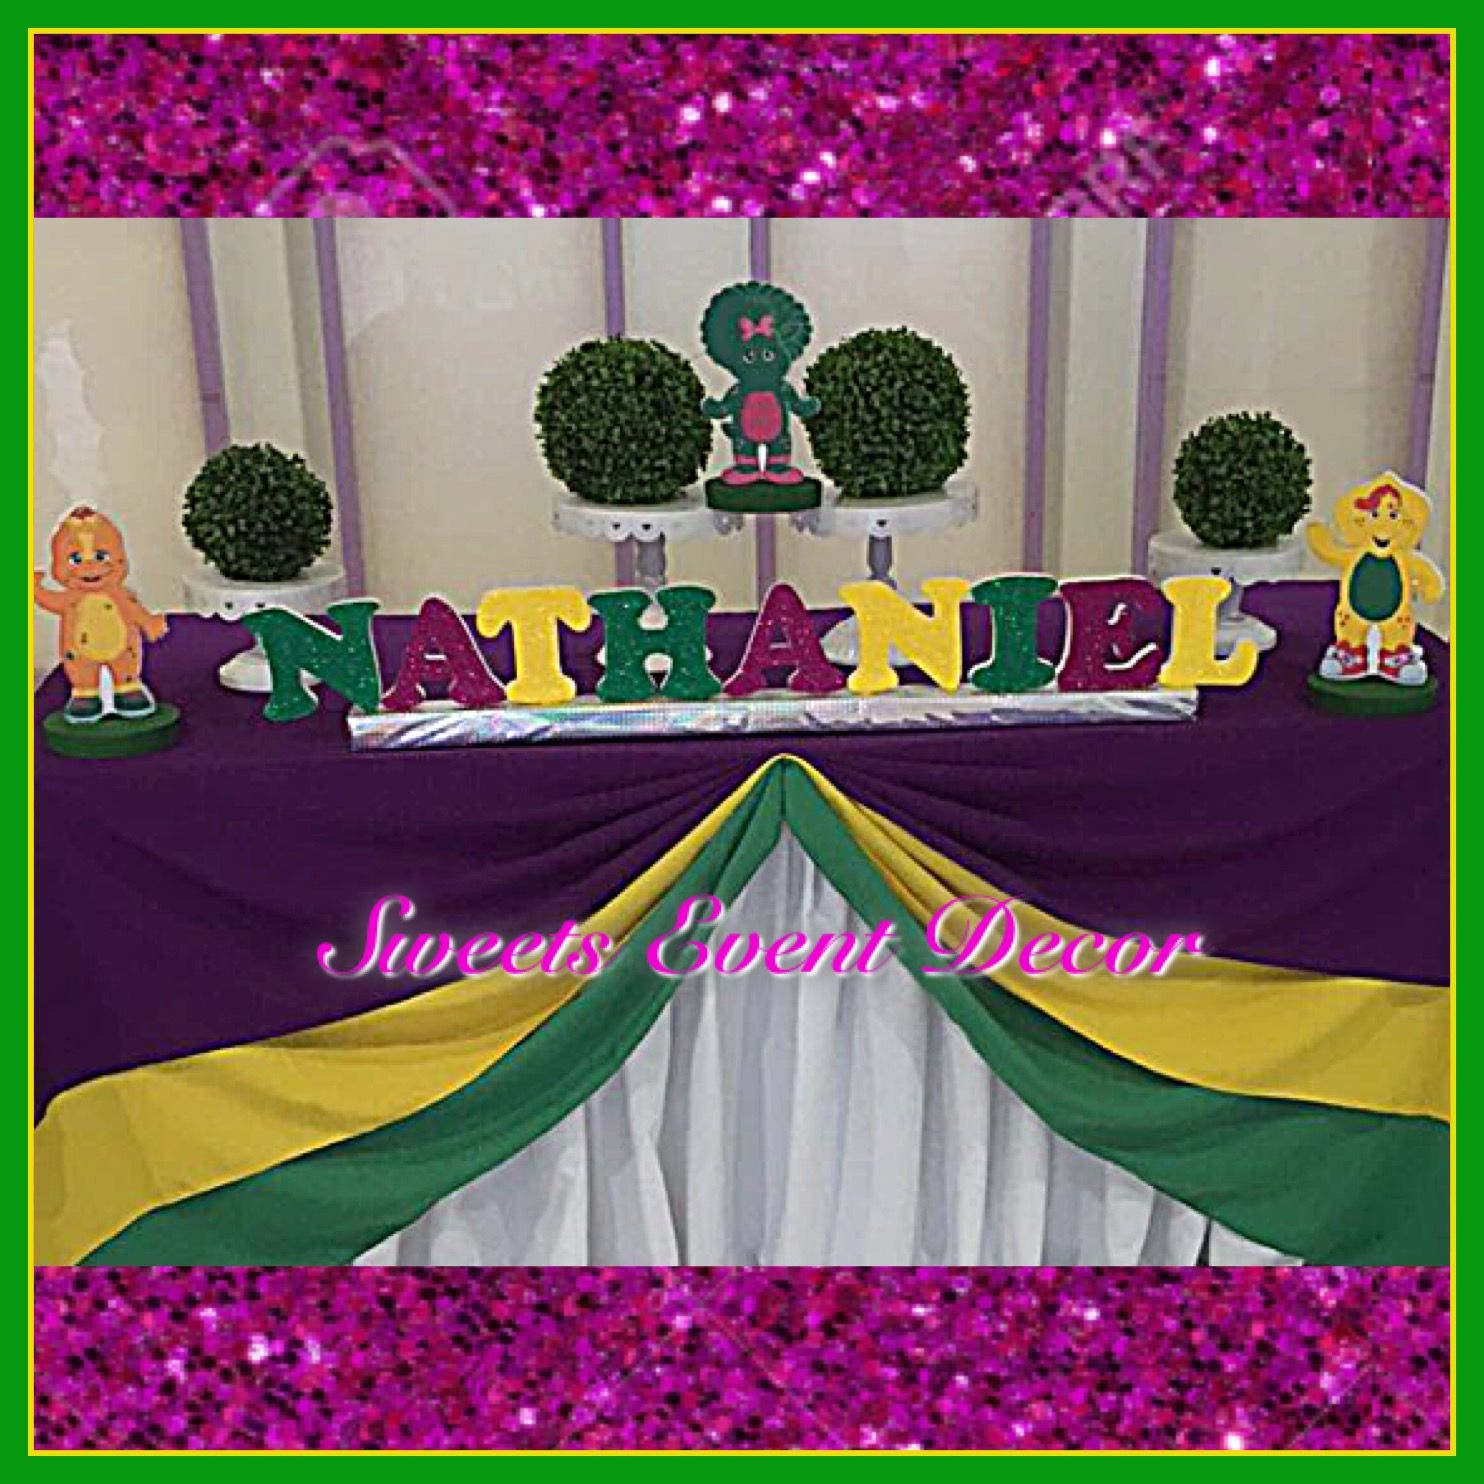 barney theme decoration by: sweets event decor | backdrop